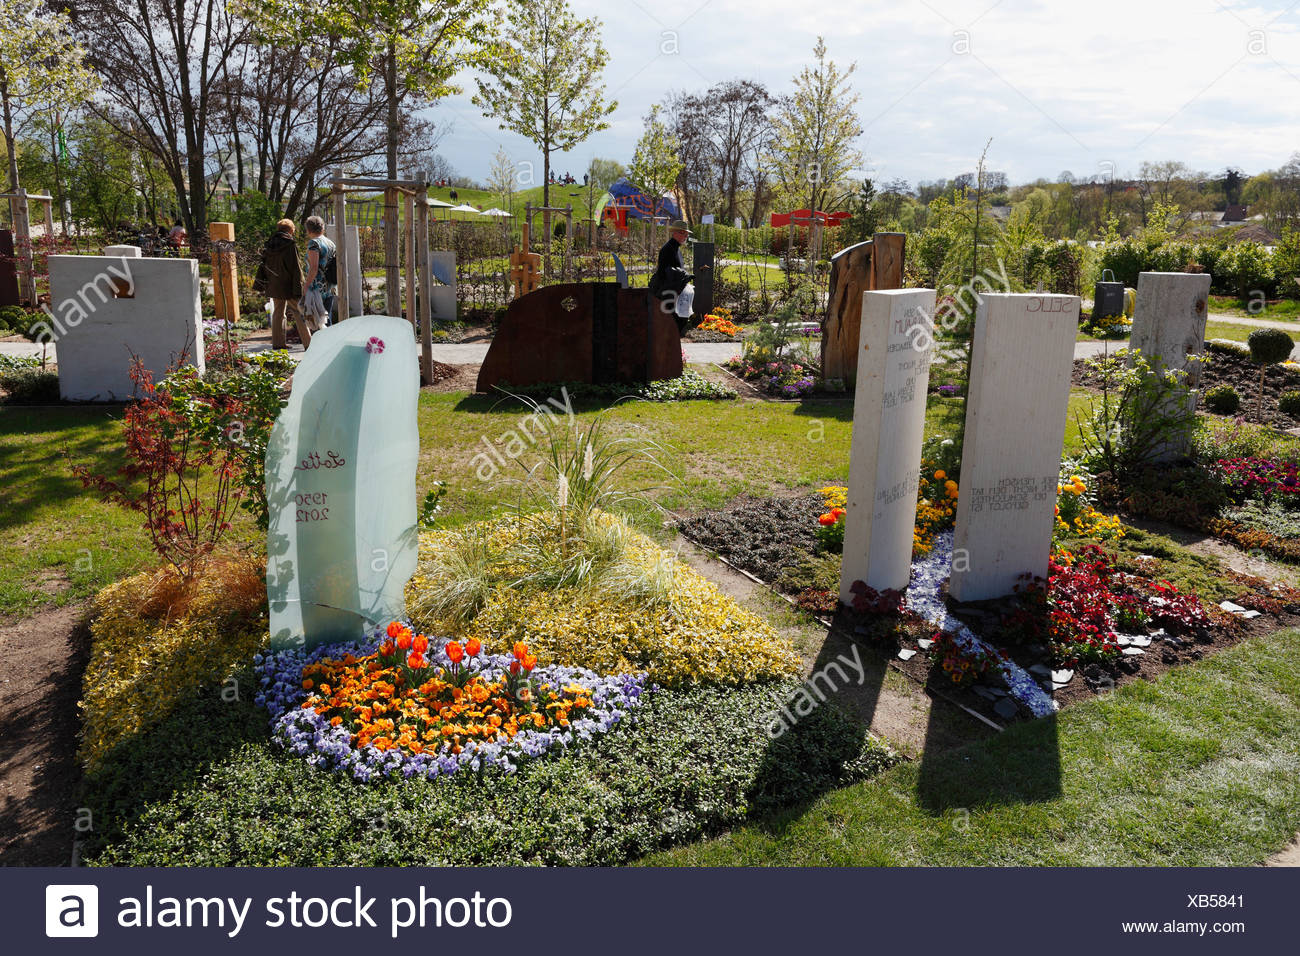 Grave or cemetery garden, Bavarian horticultural show 2012 in Bamberg, Upper Franconia, Franconia, Bavaria, Germany, Europe Stock Photo